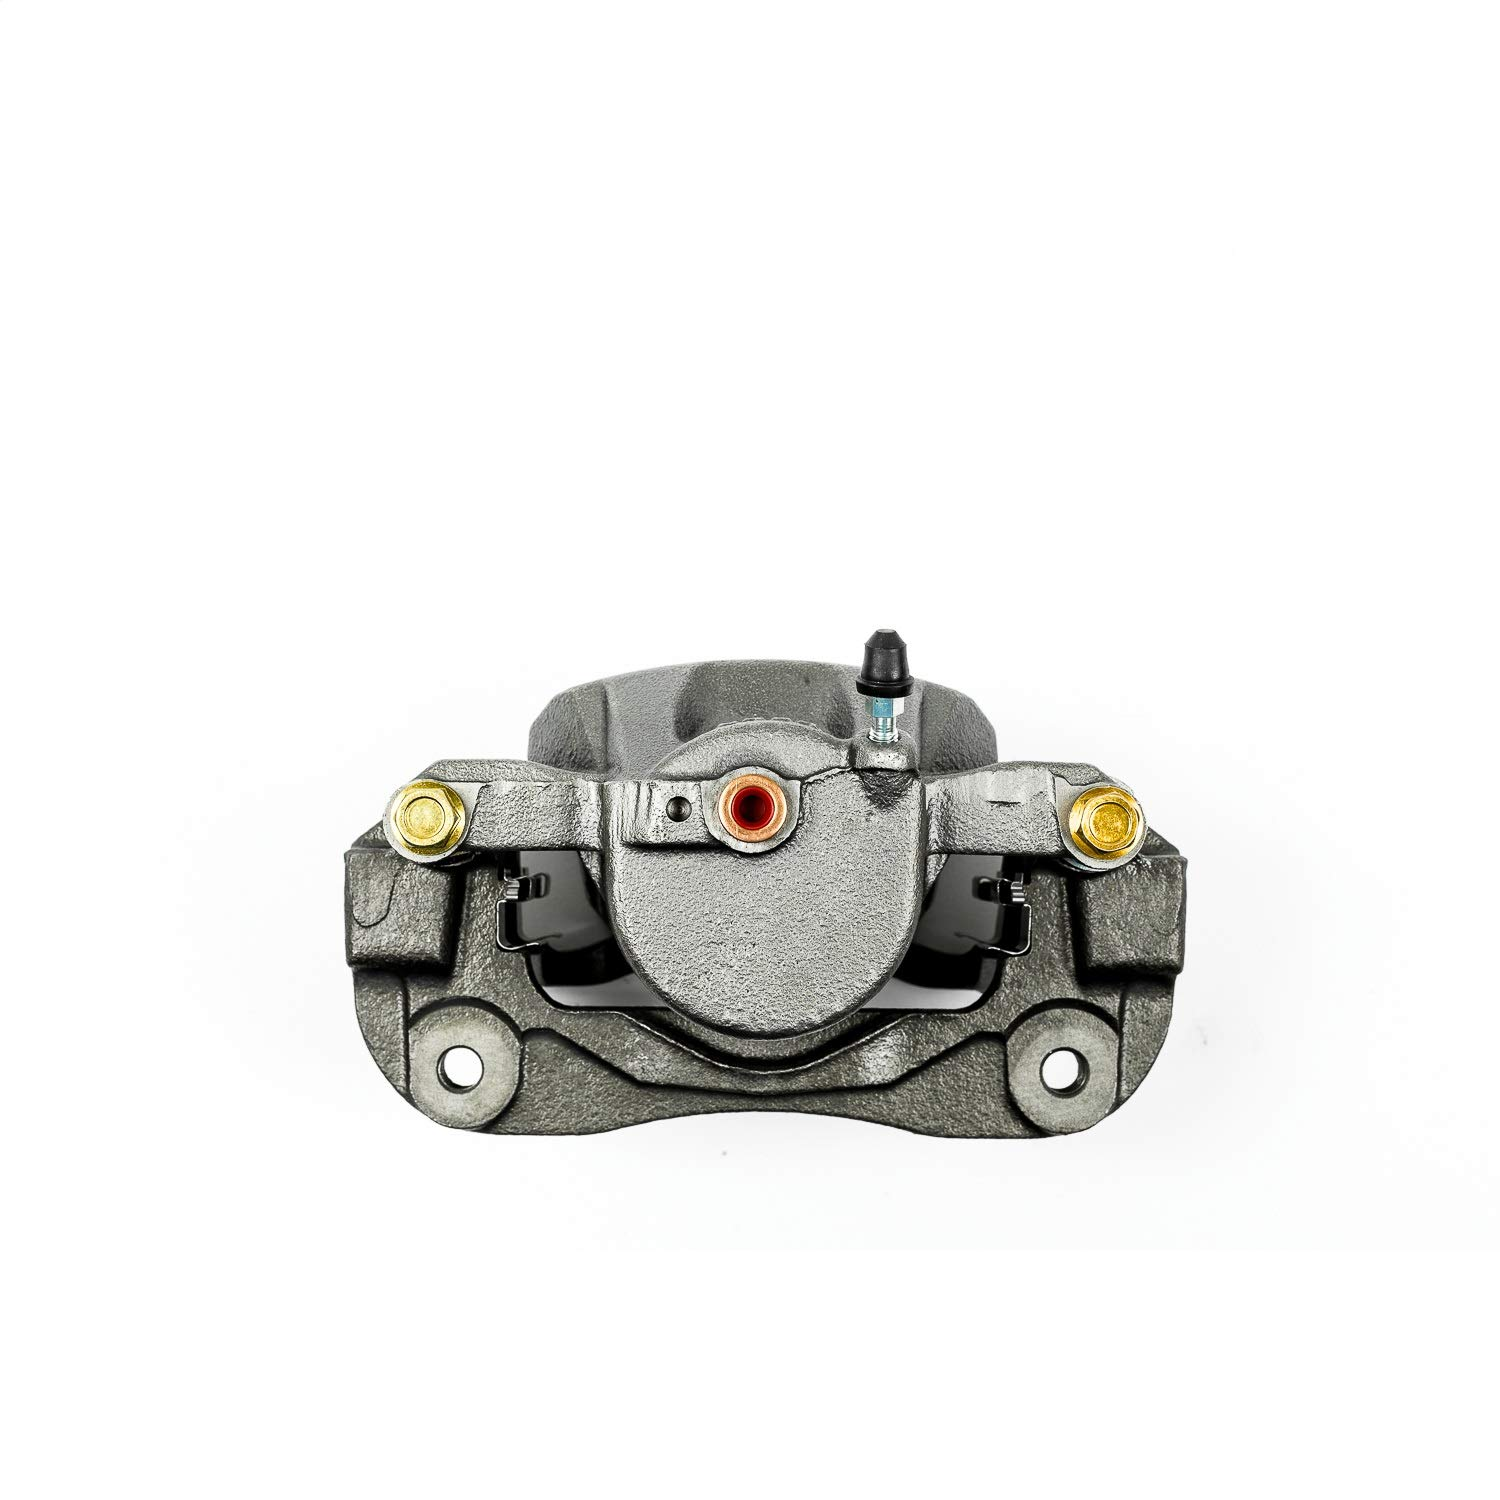 Power Stop L2665 Autospecialty Remanufactured Brake Caliper